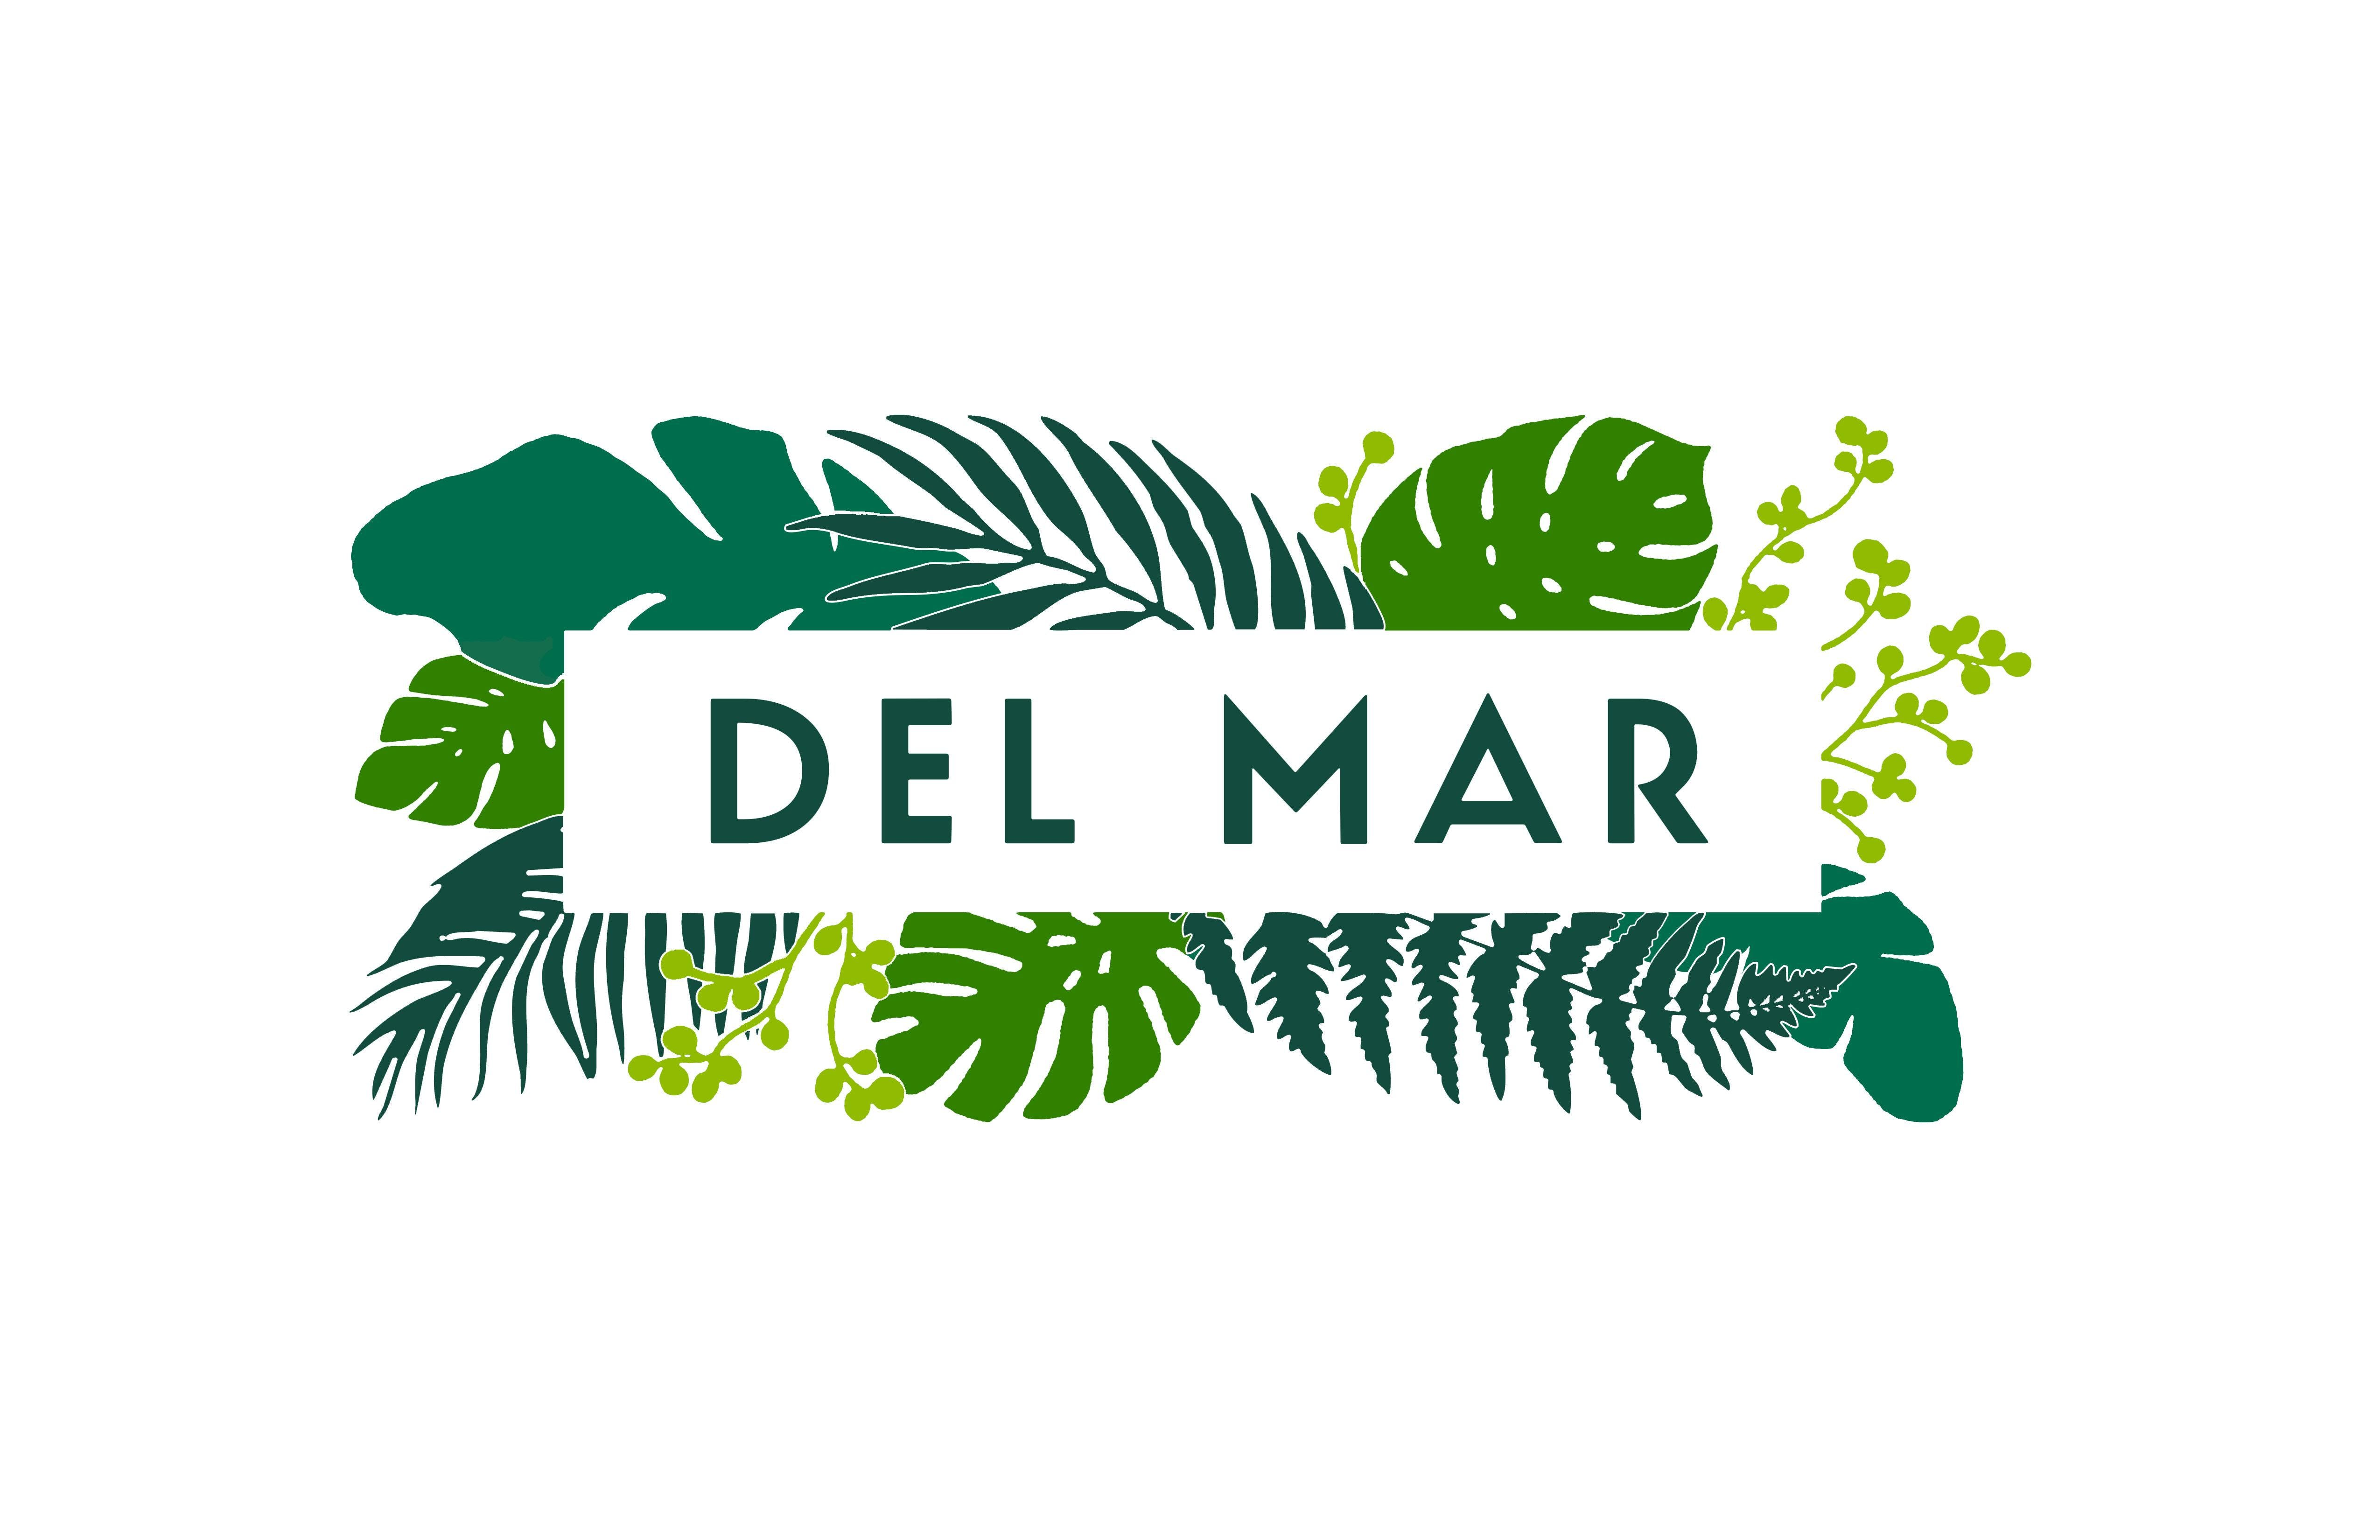 207 del mar events in Del Mar, Today and Upcoming del mar events in ...